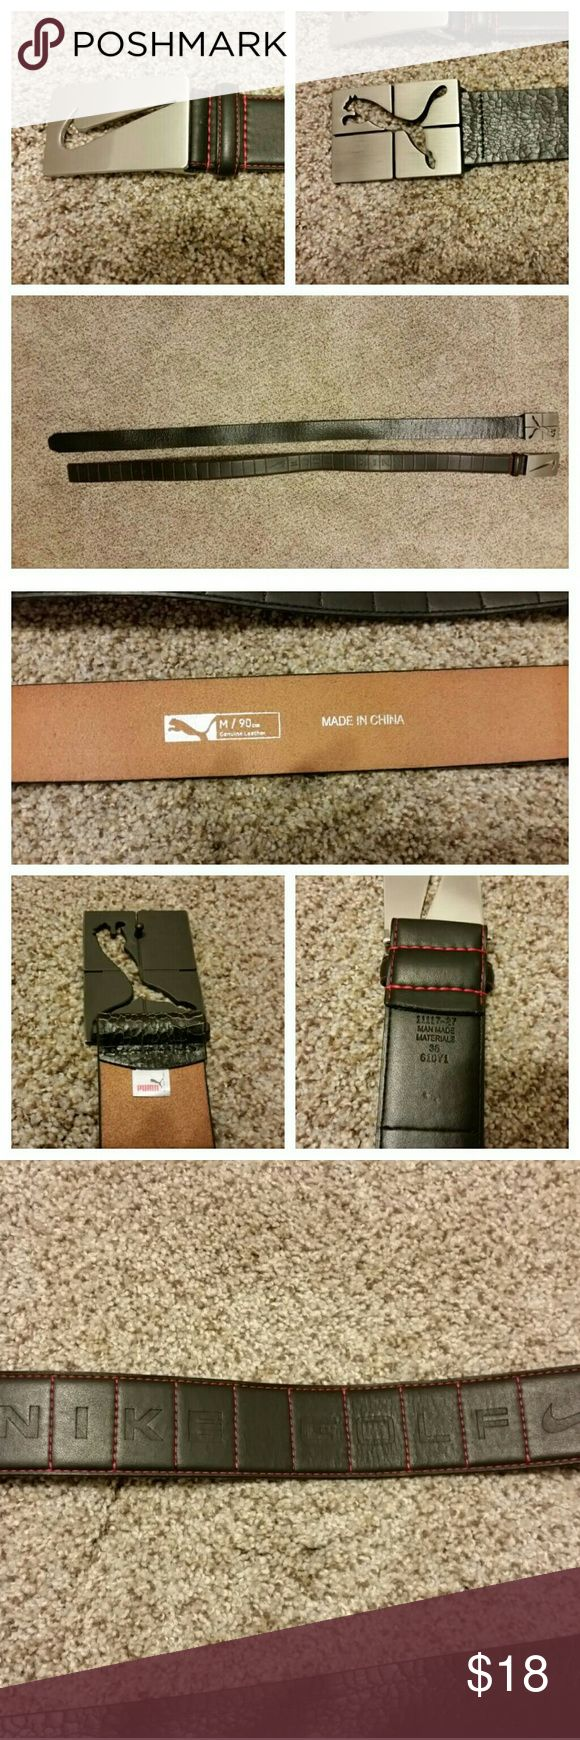 Golf belts Nike and Puma Puma belt is crackle leather and has a spot on the inside.   Nike belt is man made an says NIKE GOLF across  the center of the belt. Size 36 Nike Accessories Belts